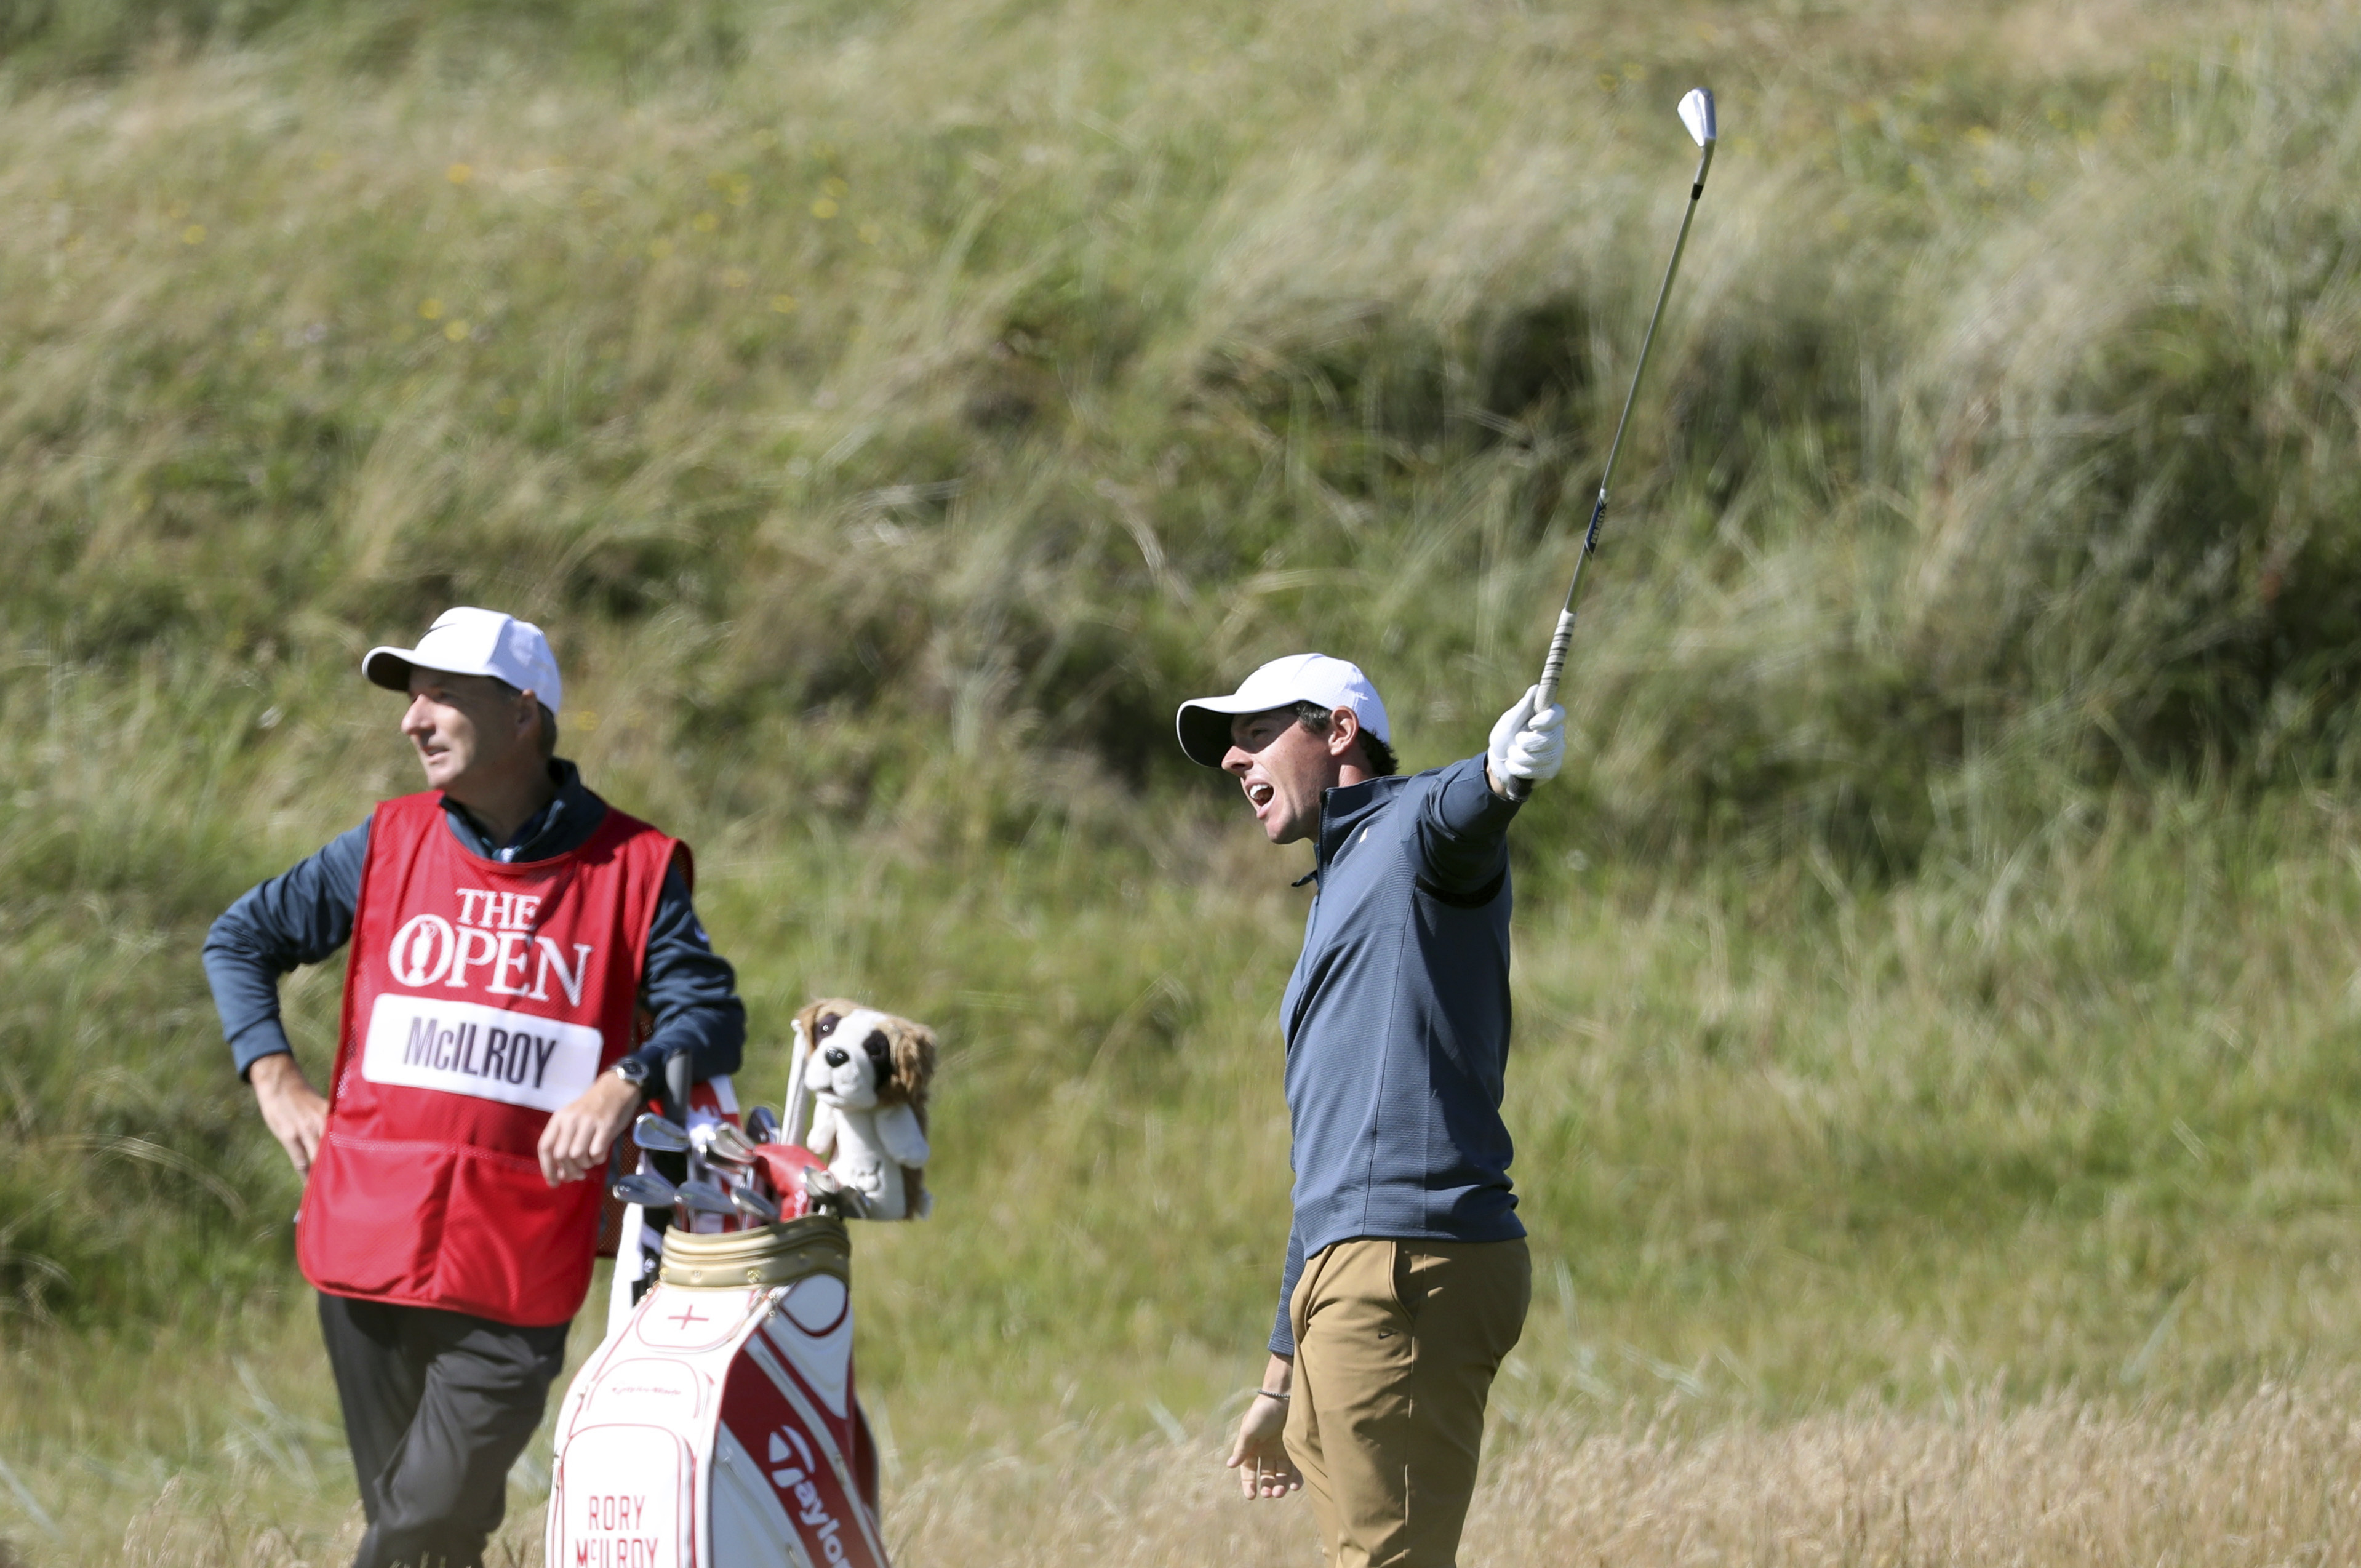 Northern Ireland's Rory McIlroy reacts after hitting a wayward shot on the 5th hole during the first round of the British Open Golf Championship, at Royal Birkdale, Southport, England Thursday, July 20, 2017. (AP Photo/Peter Morrison)